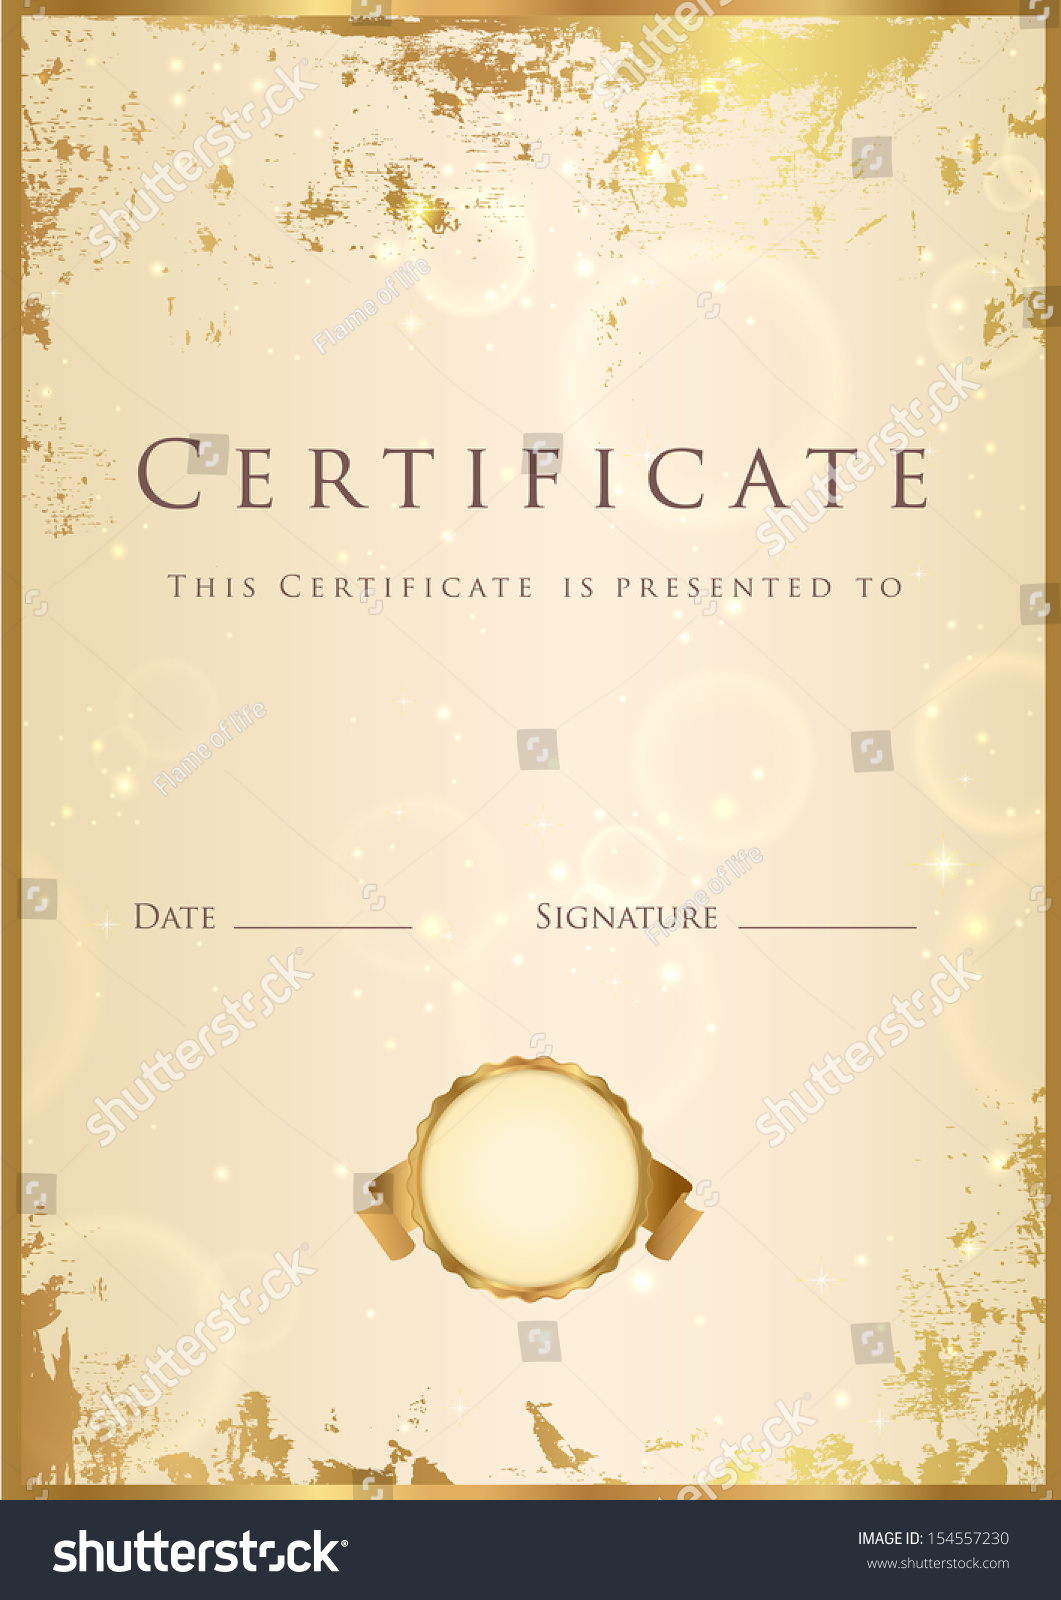 Certificate diploma completion template background gold stock certificate diploma of completion template background with gold grunge texture frame yelopaper Image collections